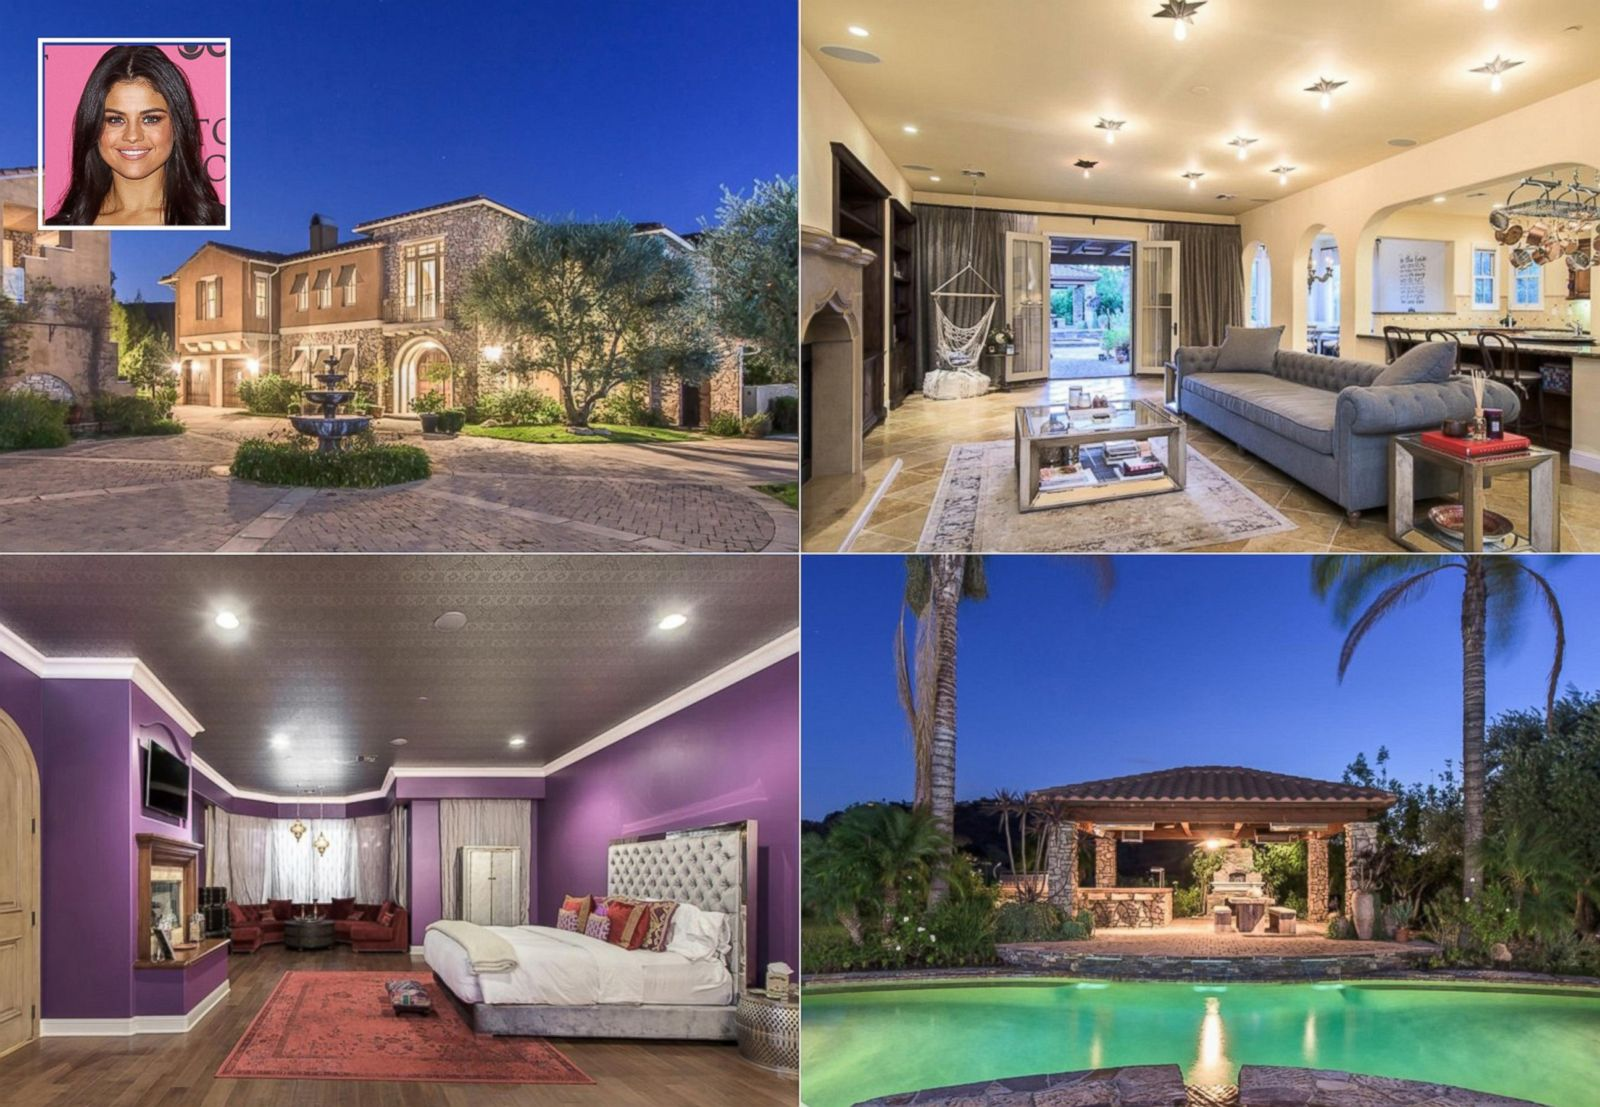 selena gomez lists california home for 4 5 million